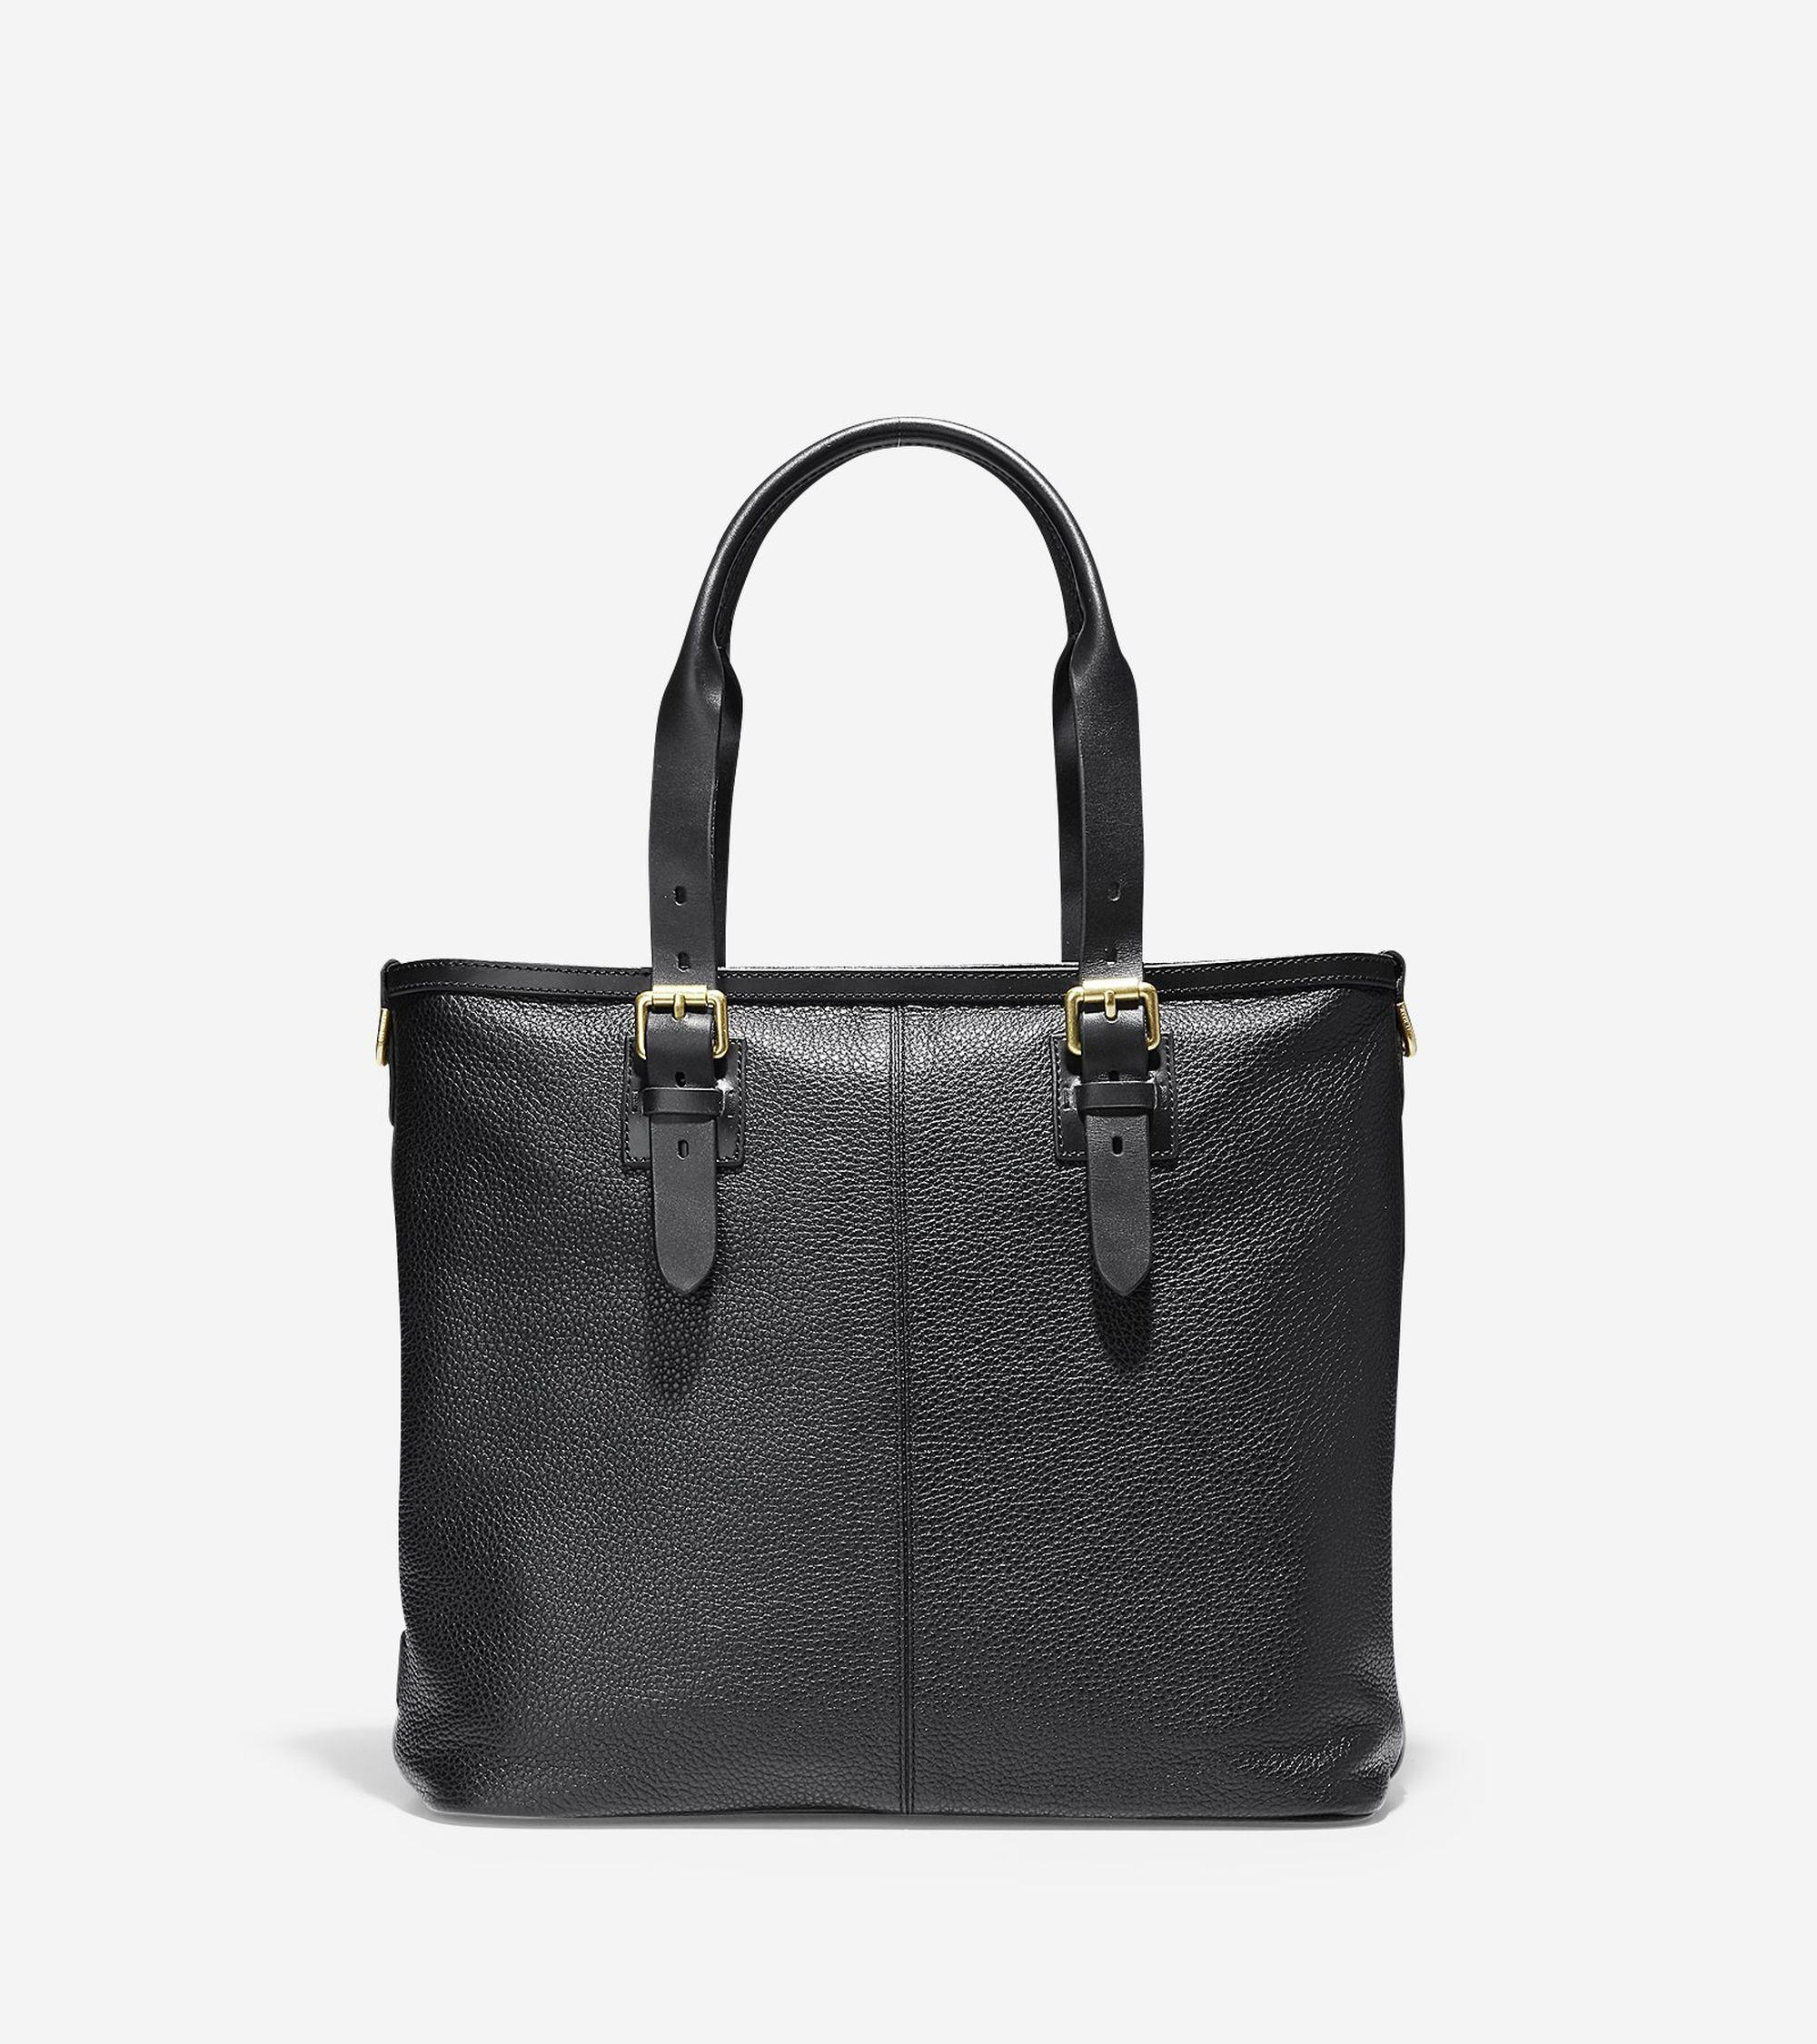 Lyst - Cole Haan Brayton Tote in Black for Men 920310e98195a